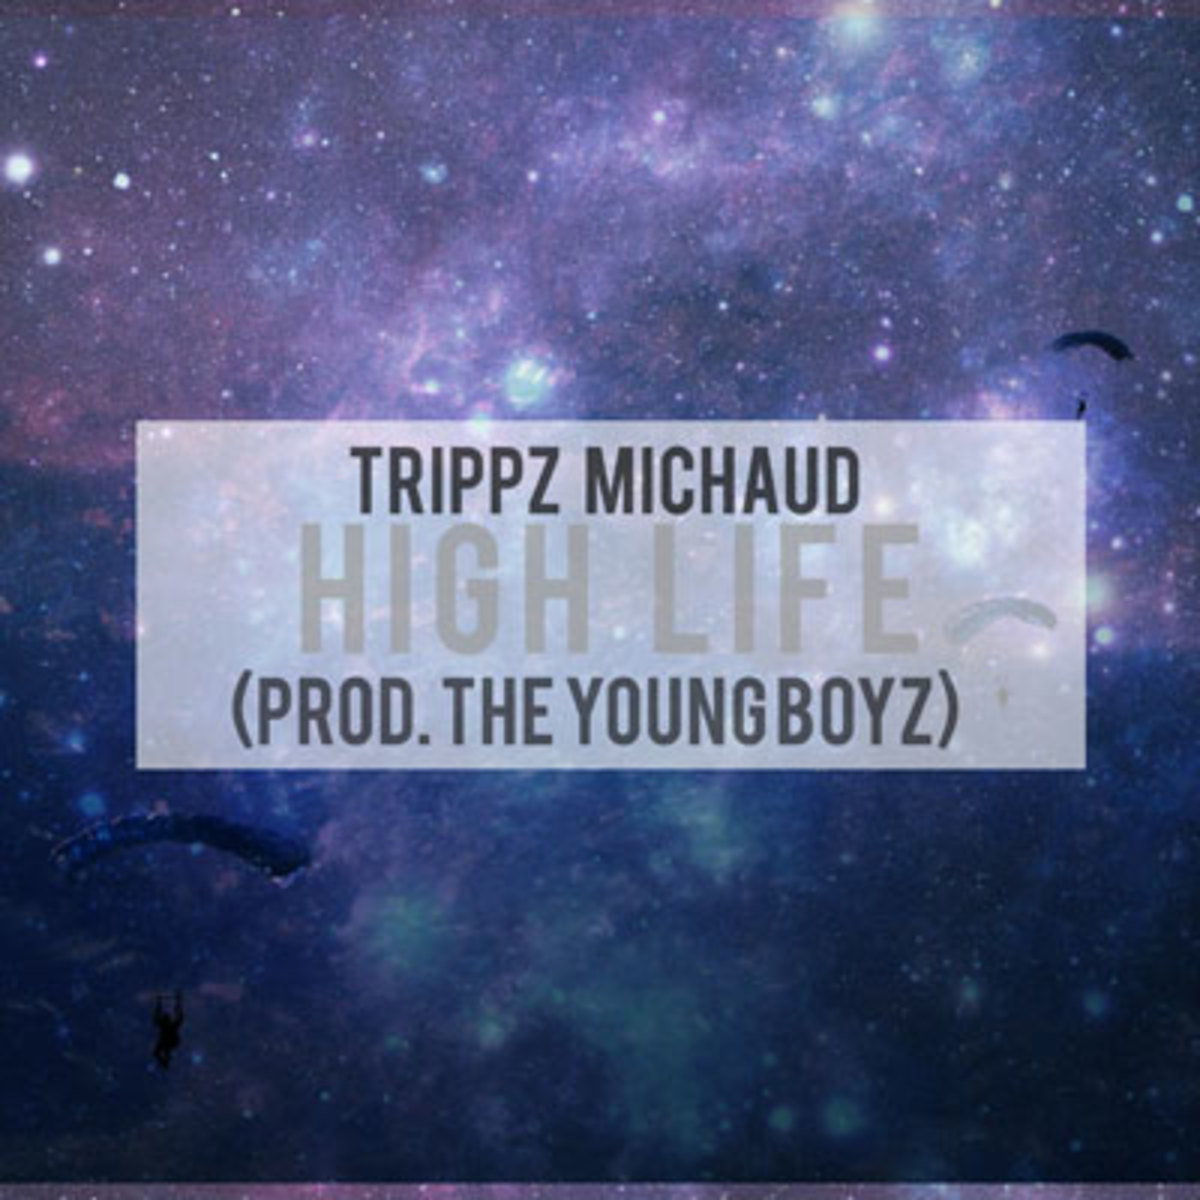 trippz-michaud-high-life.jpg